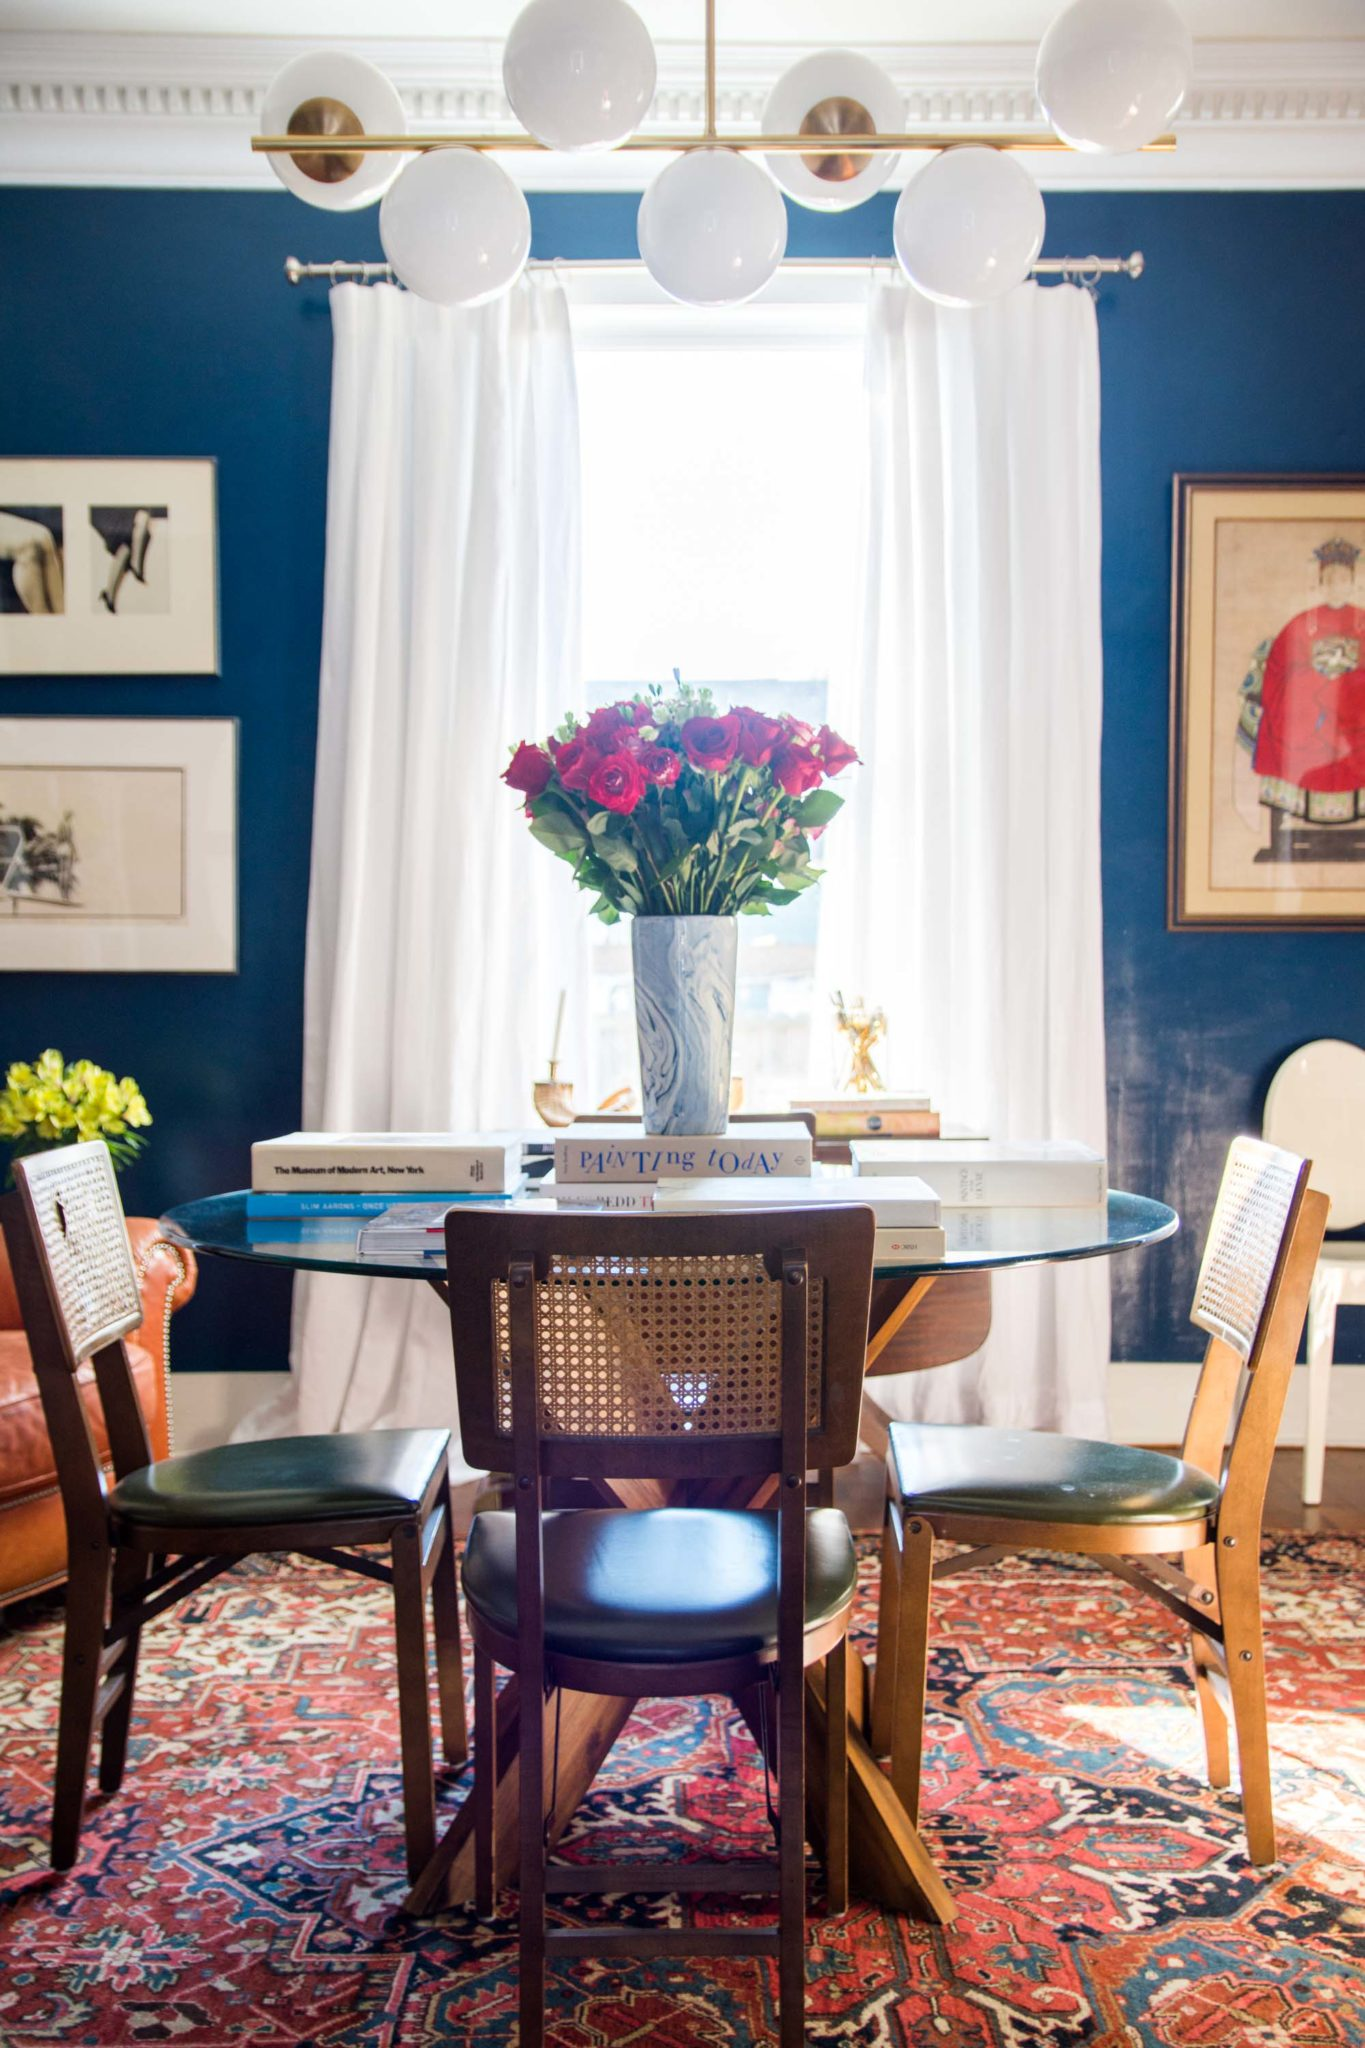 I Am So Excited To Share The Reveal Of Bold New Dining Room At Tye Street Project Completely Reimagined With A Dark High Gloss Blue On Walls And